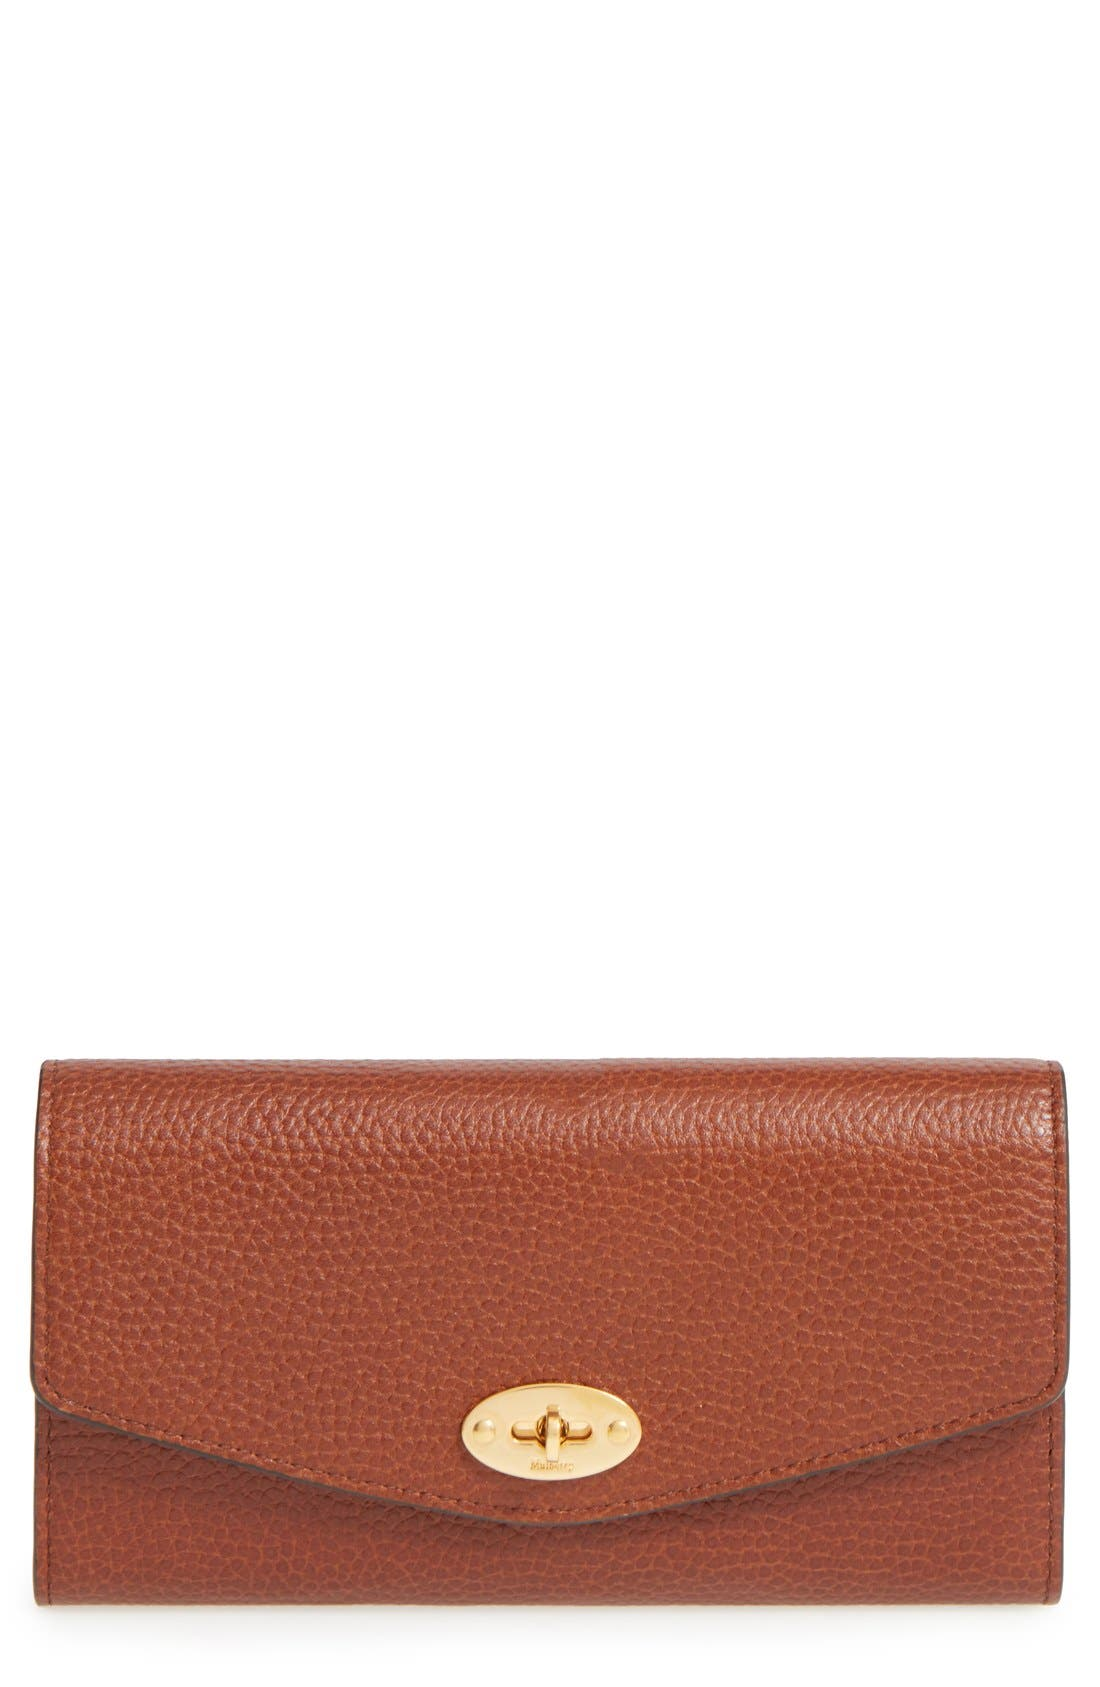 MULBERRY | Women's Mulberry 'Postman'S Lock' Leather Wallet - | Goxip